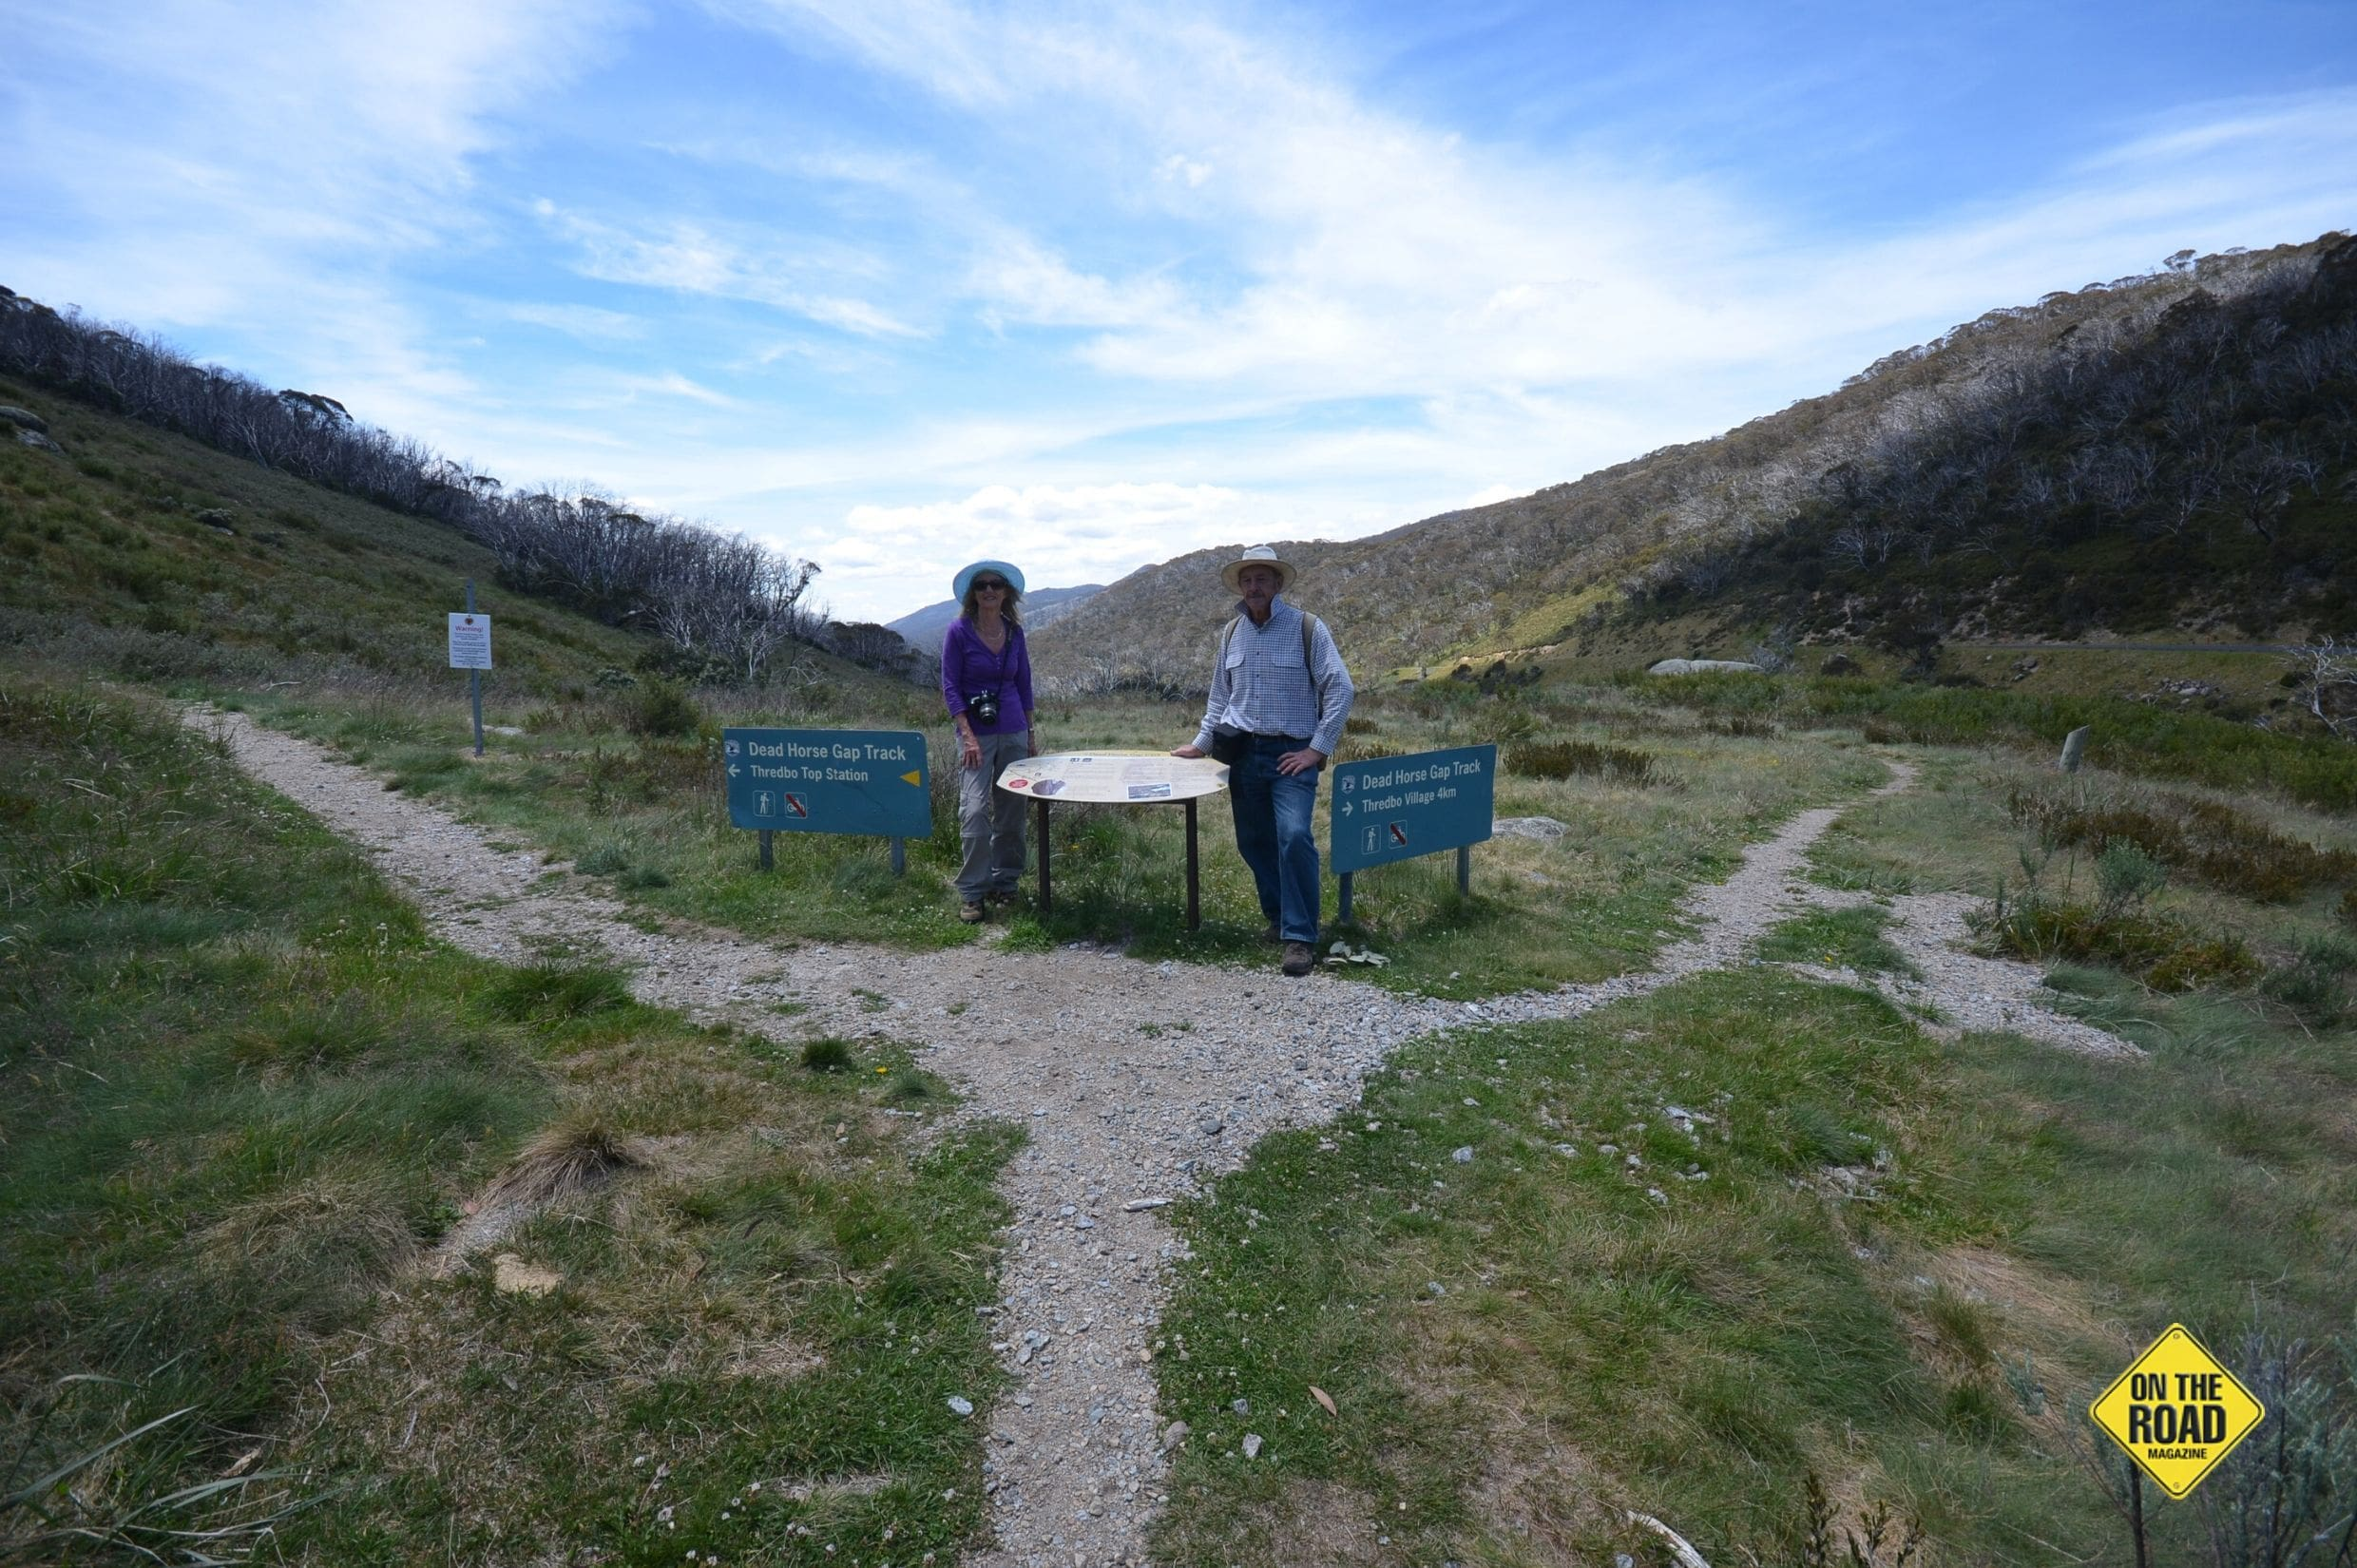 At the intersection of Dead Horse Gap and Thredbo Tracks